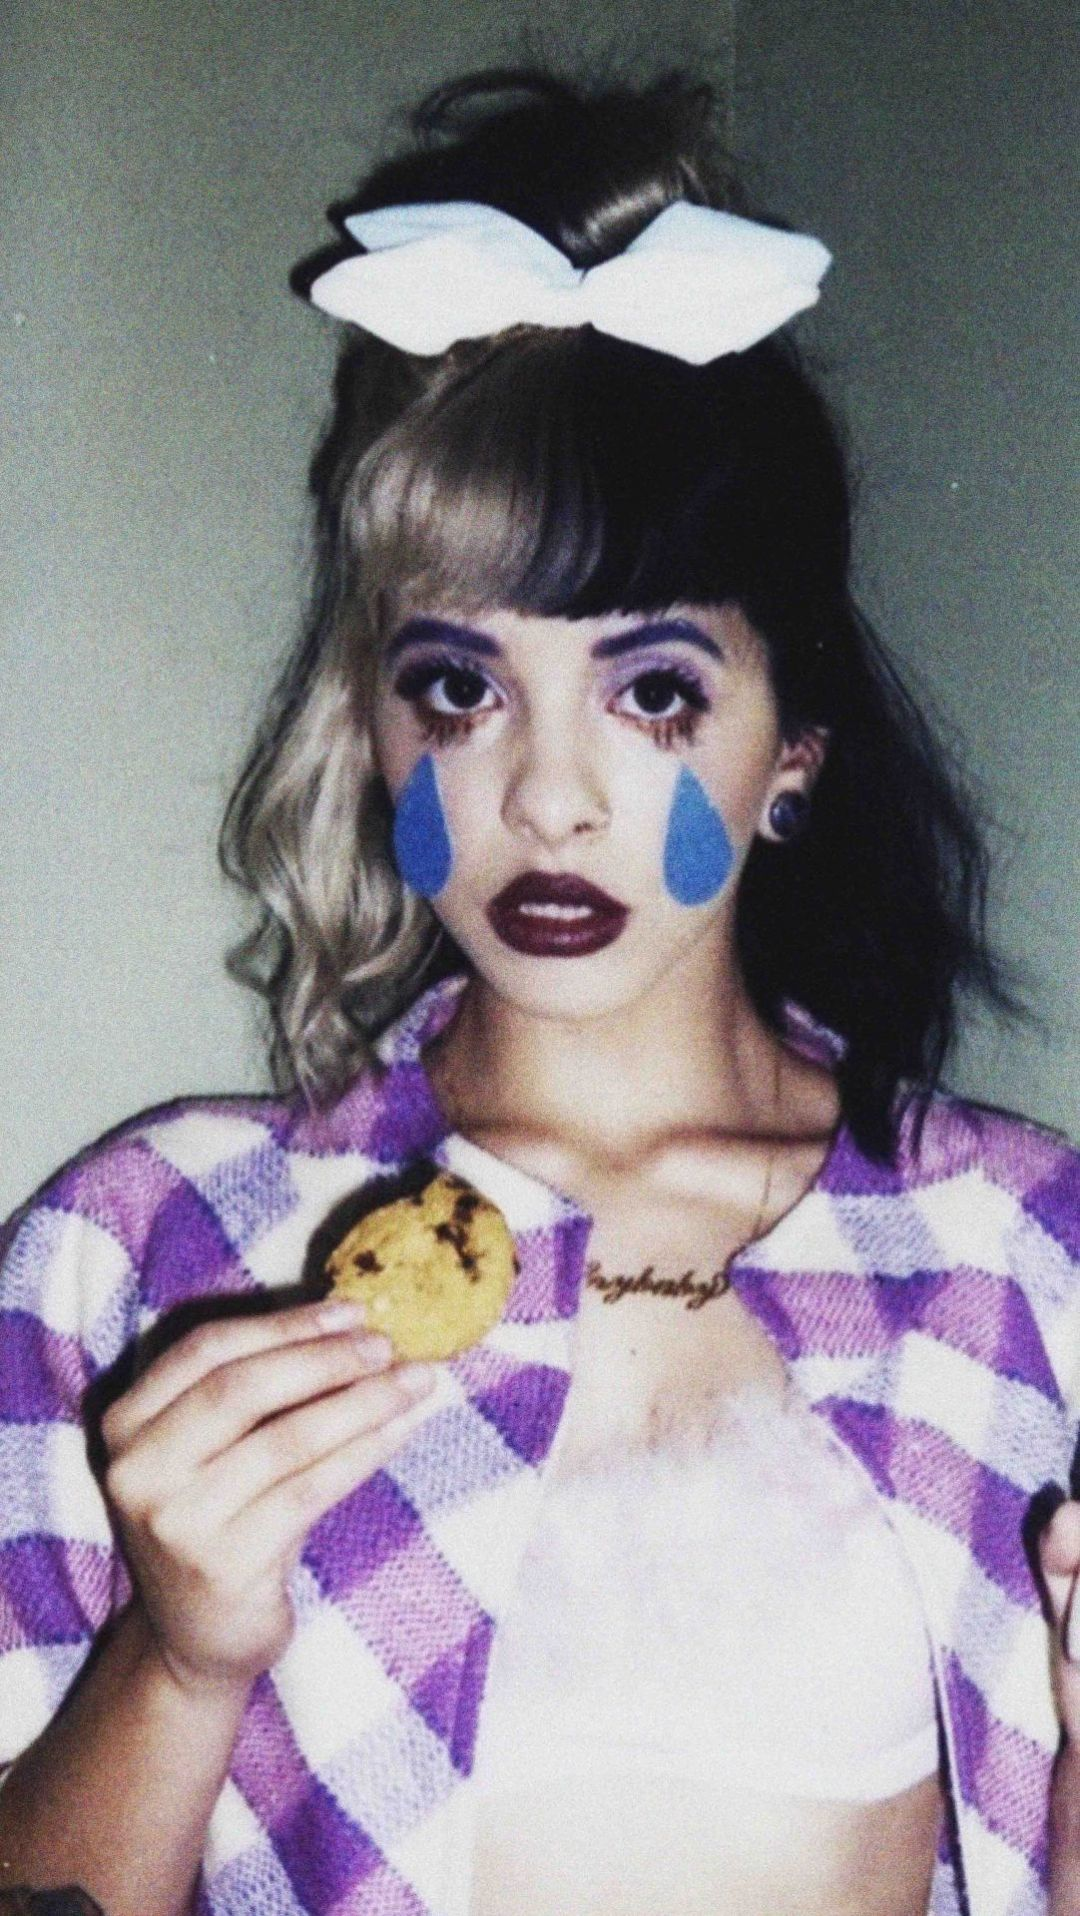 Melanie Martinez Cry Baby - Android, iPhone, Desktop HD Backgrounds / Wallpapers (1080p, 4k) (337438) - Girls